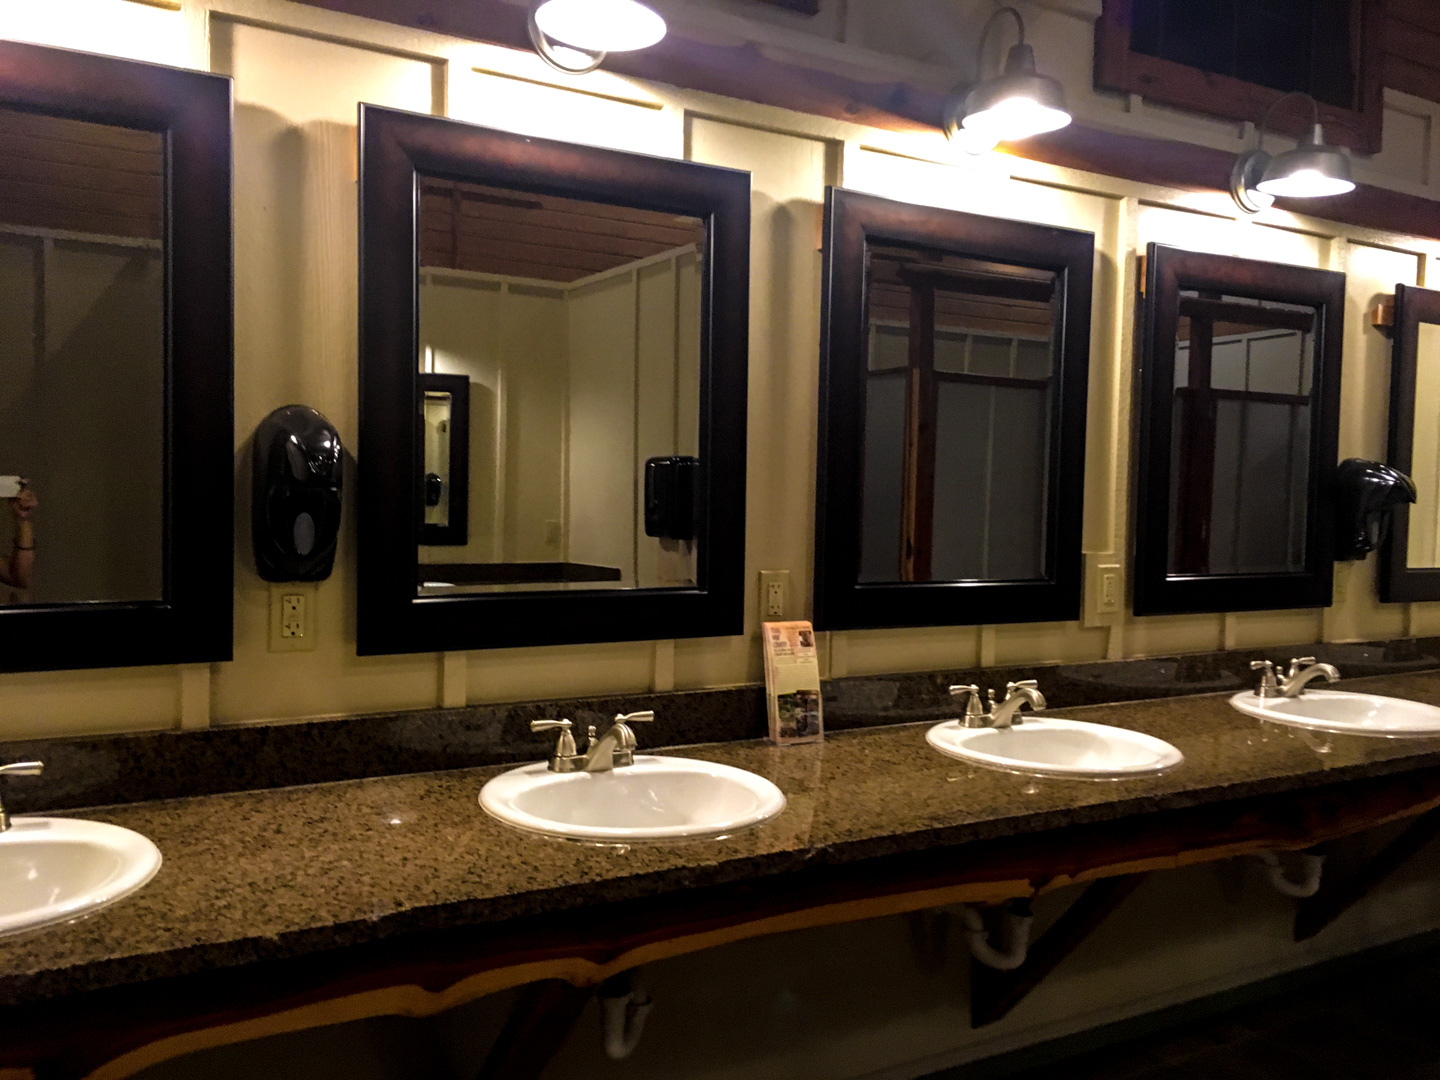 An example of a nicer bathroom at a campground. This is a bathroom at Jellystone Park resort.